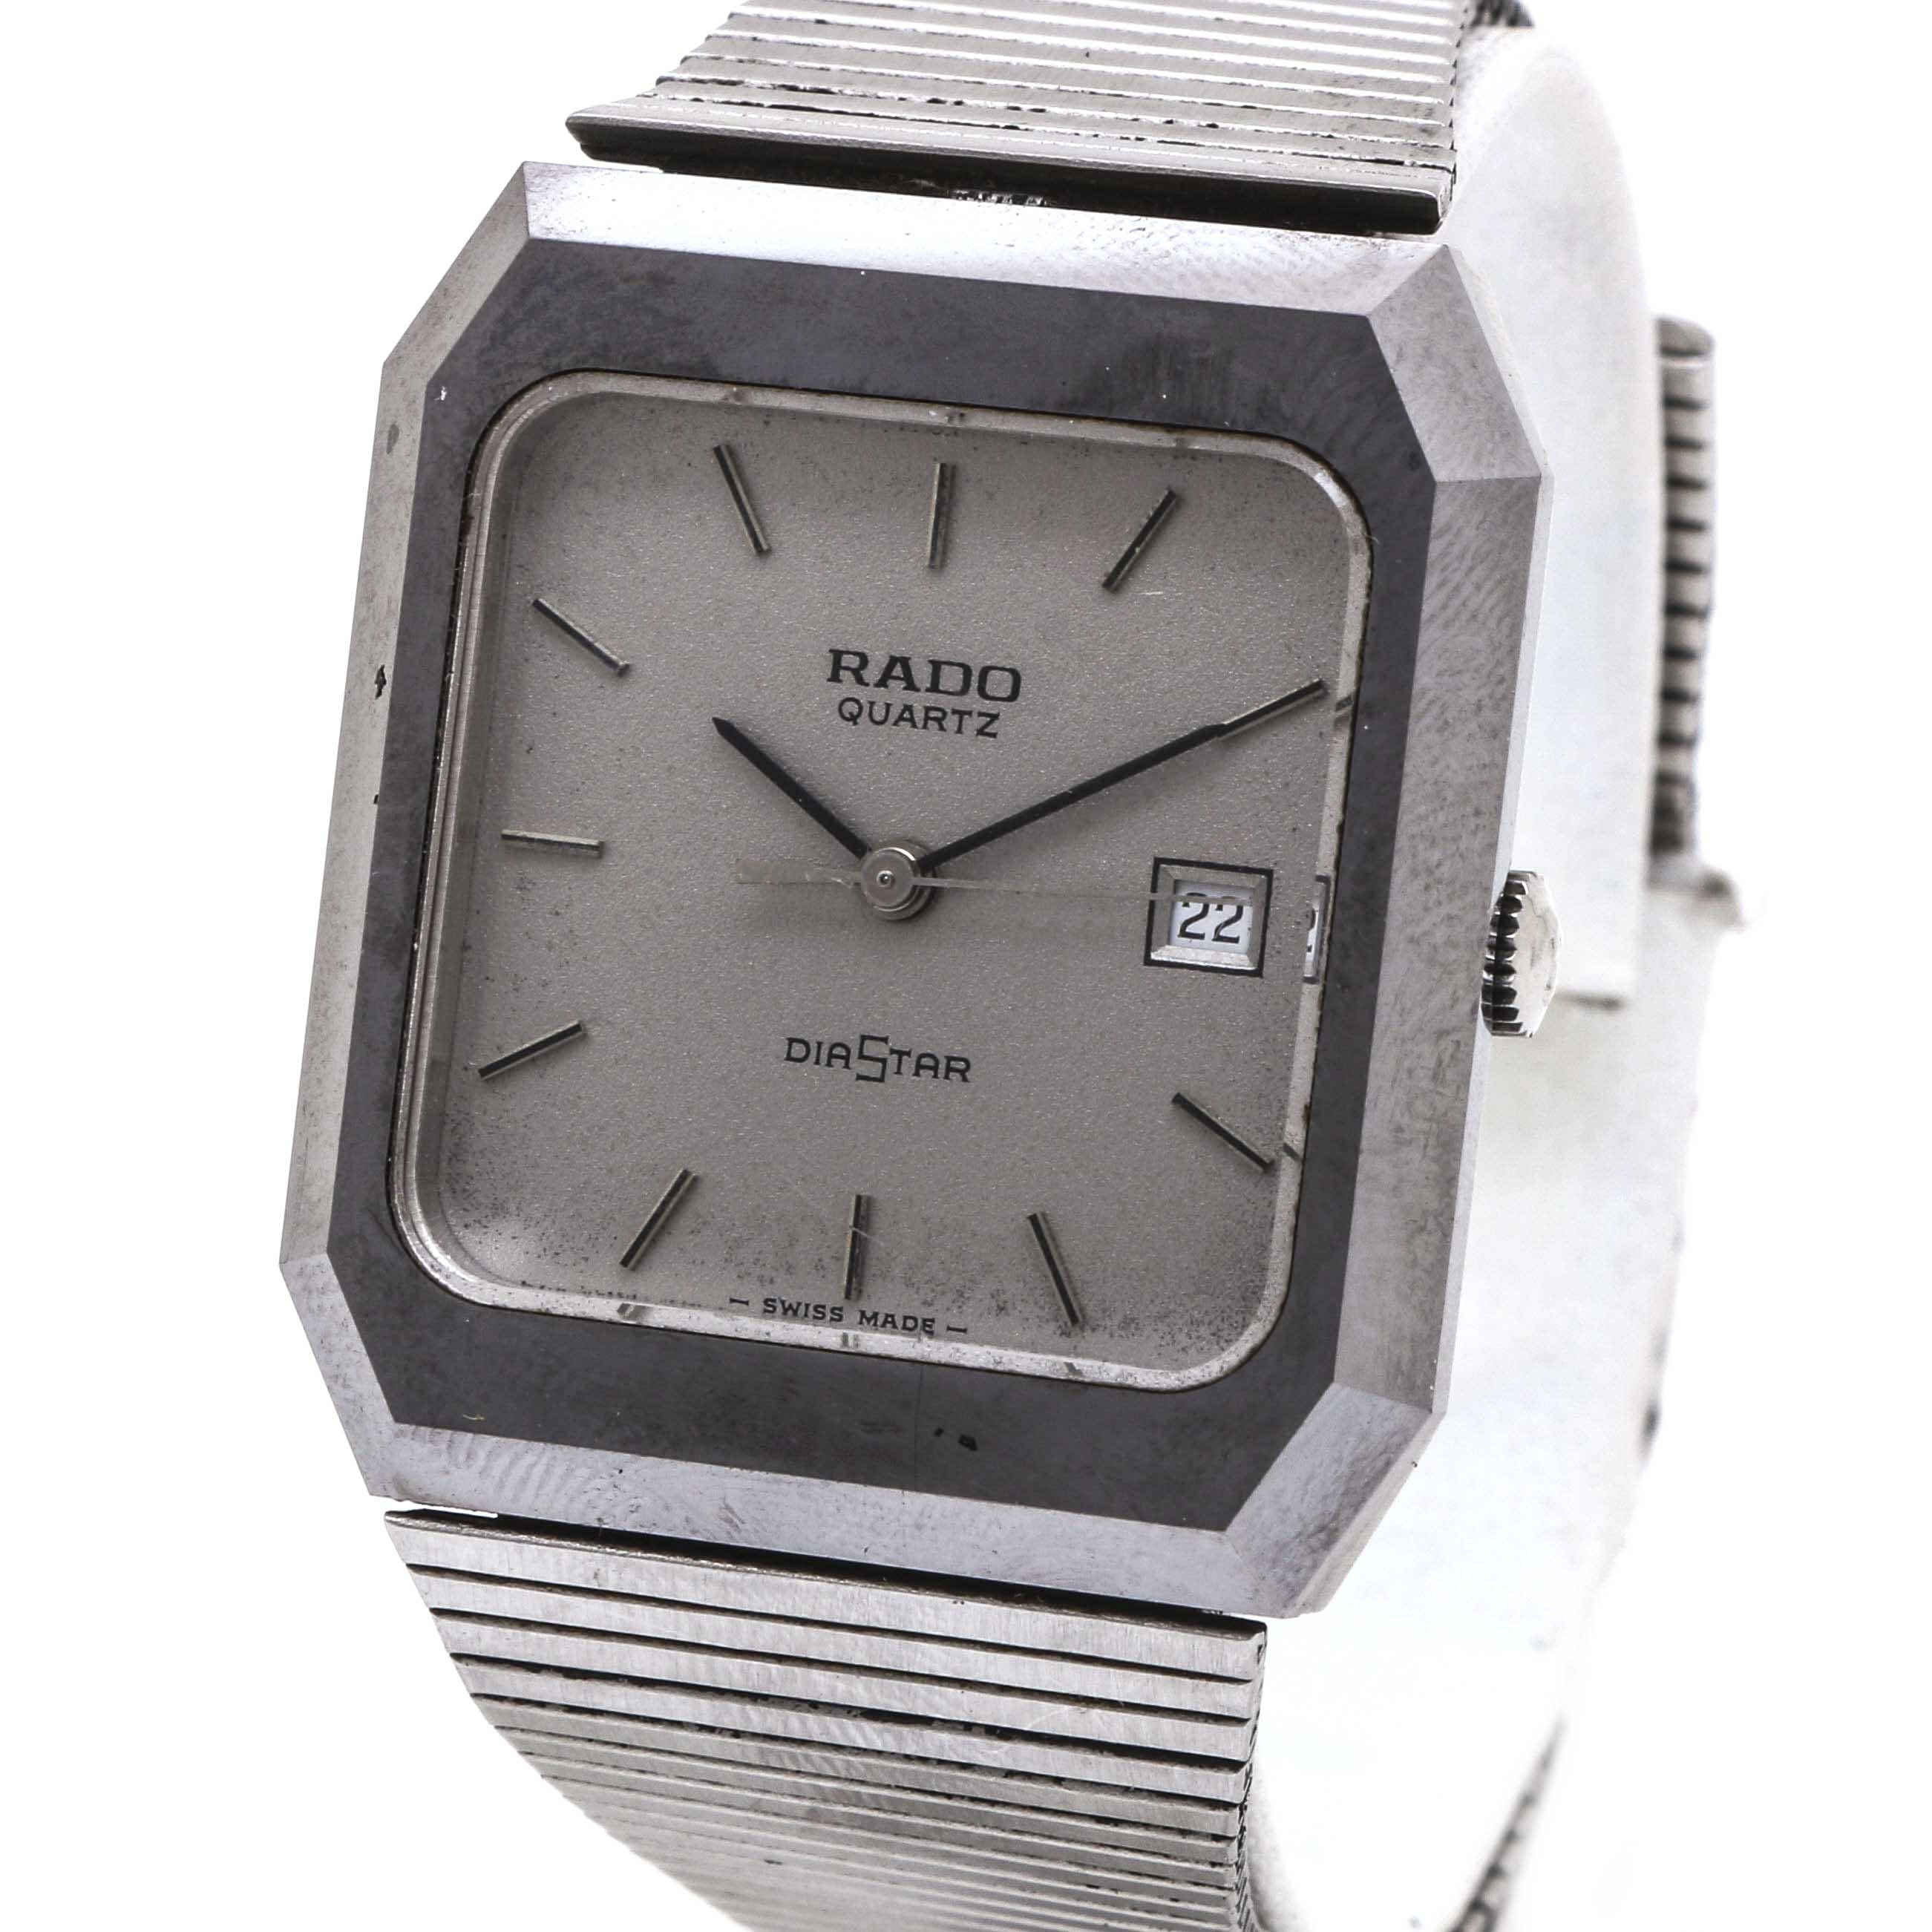 Rado Diastar Stainless Steel Wristwatch